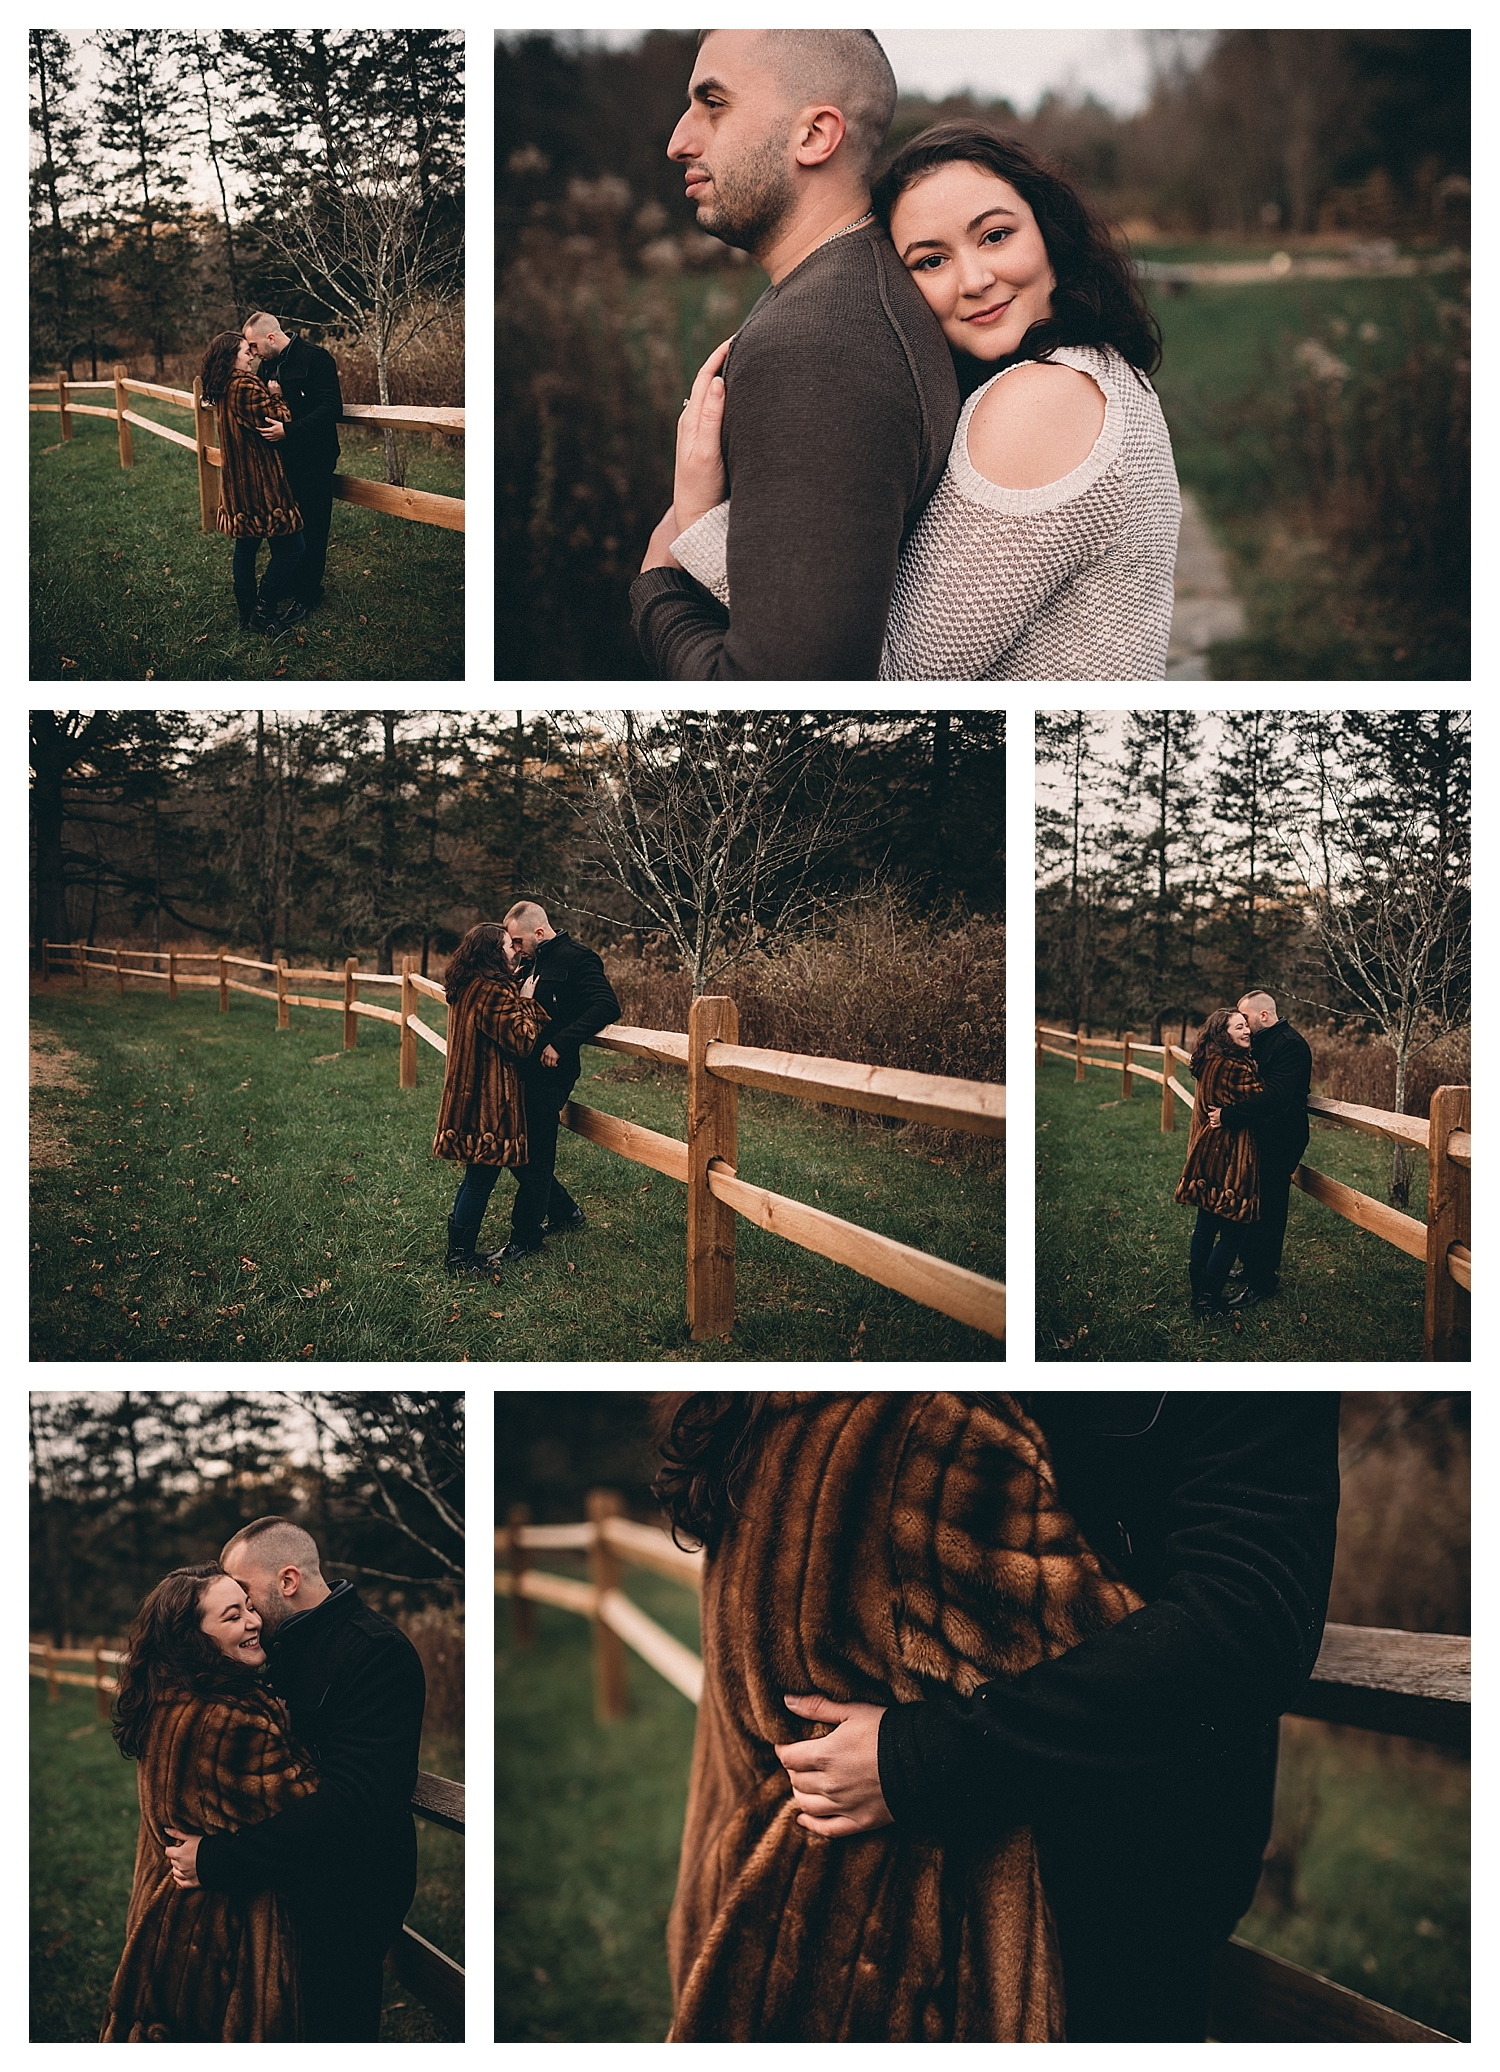 NEPA-Scranton-wedding-engagement-photographer-in-Philadelphia-PA-Central-PA_0313.jpg